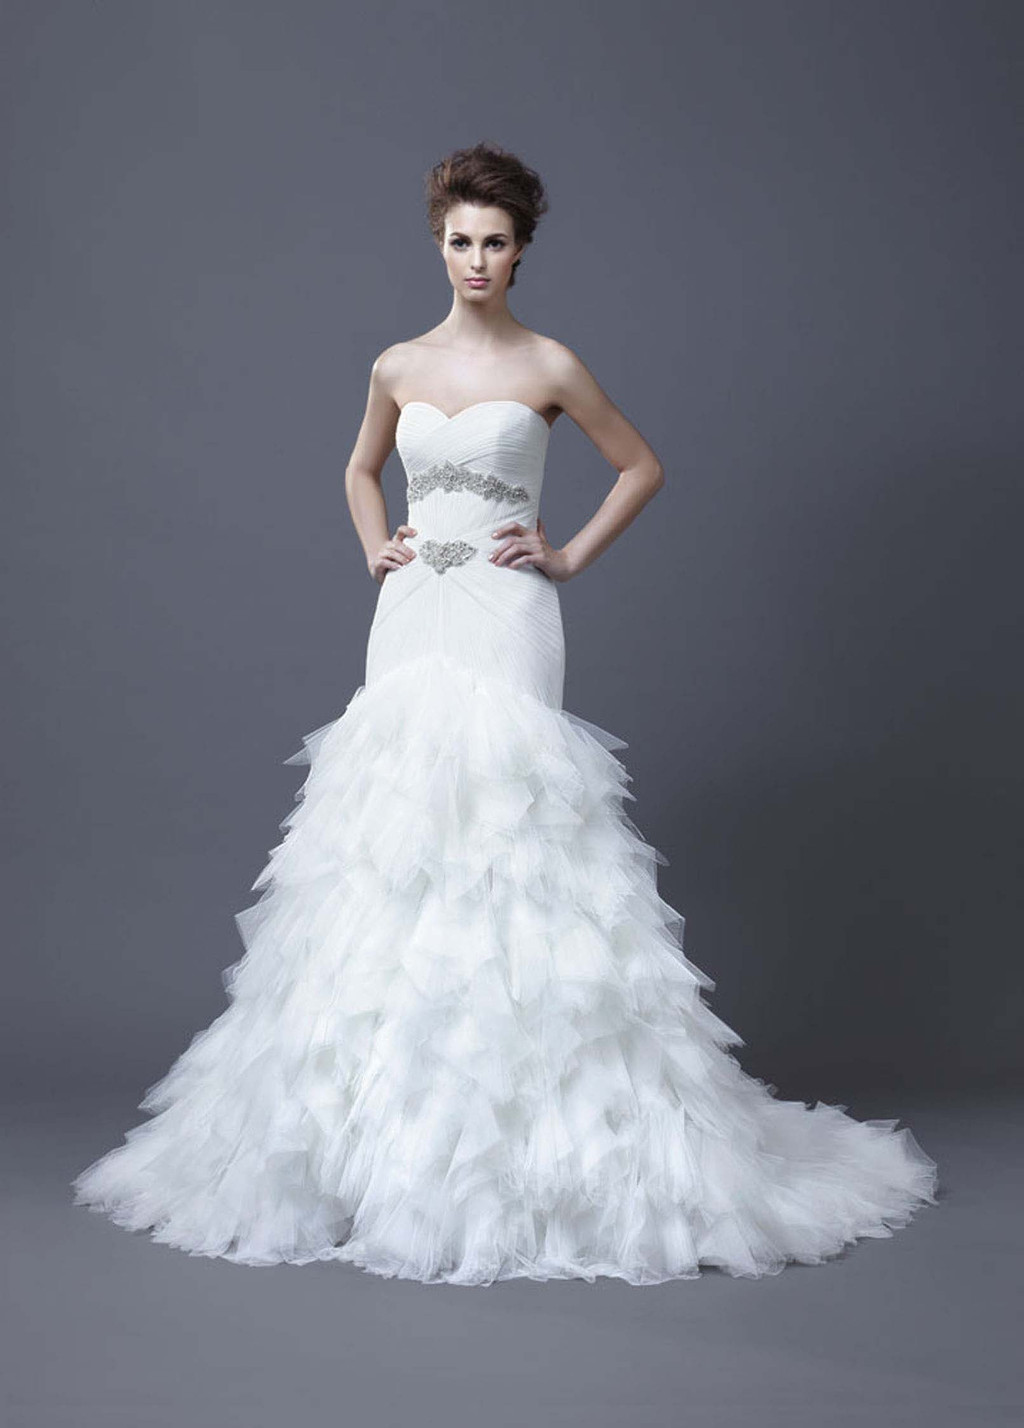 2013 Wedding Dress by Enzoani Bridal Hadiya